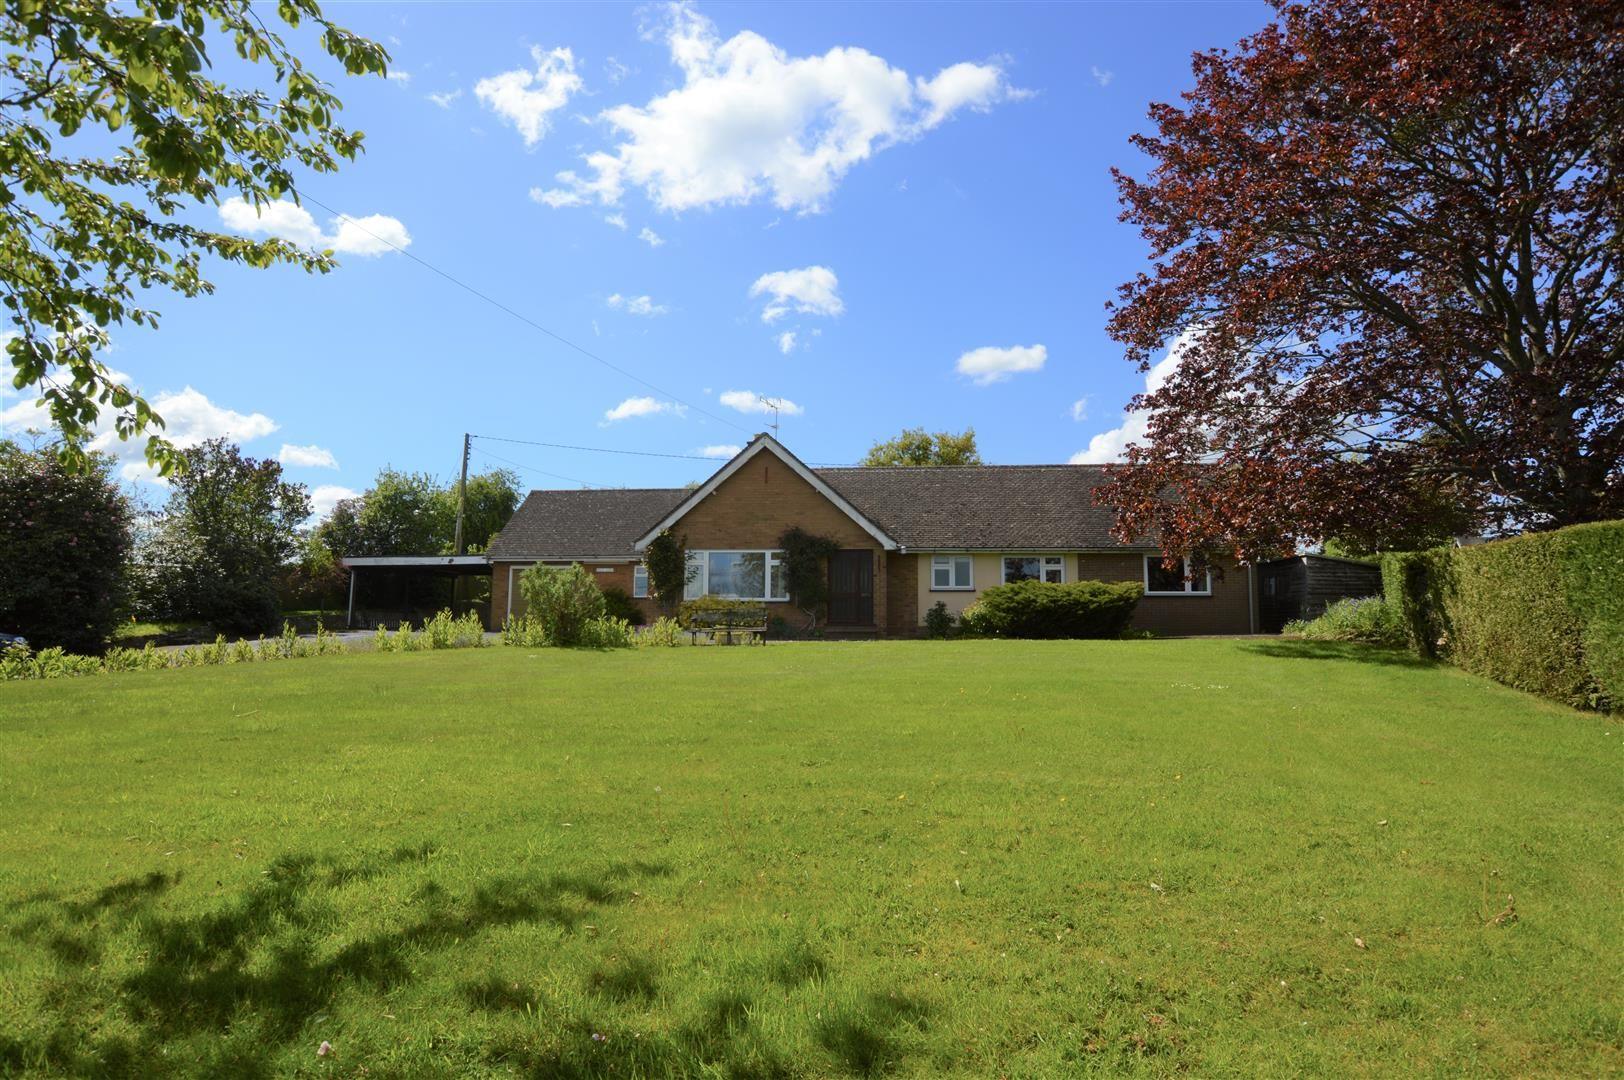 3 bed detached bungalow for sale in Luston, HR6